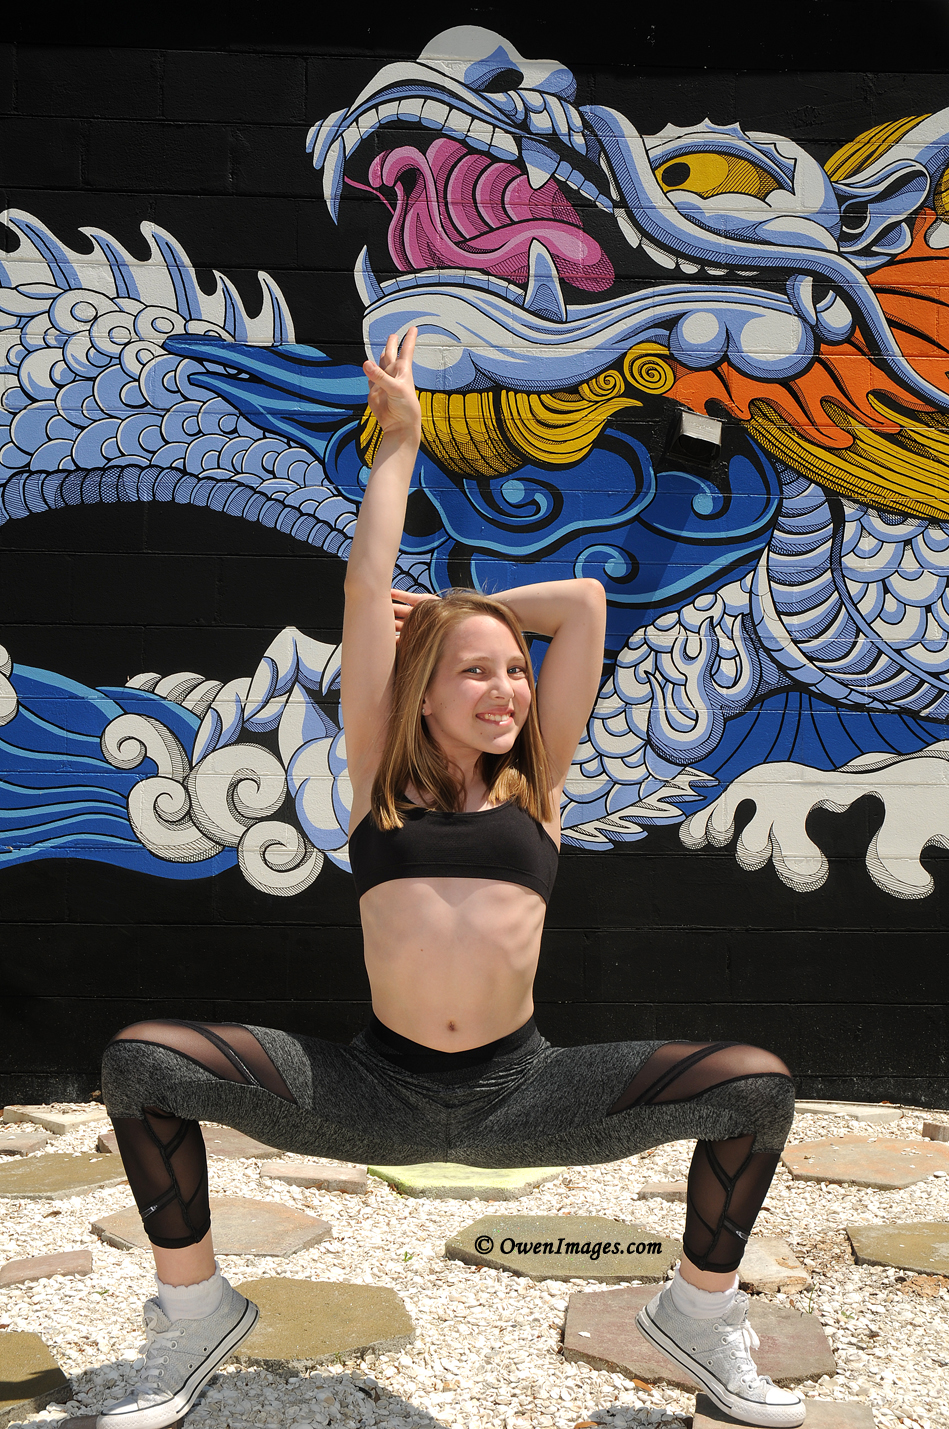 Gymnast posing in front of a mural in downtown Saint Petersburg, Florida